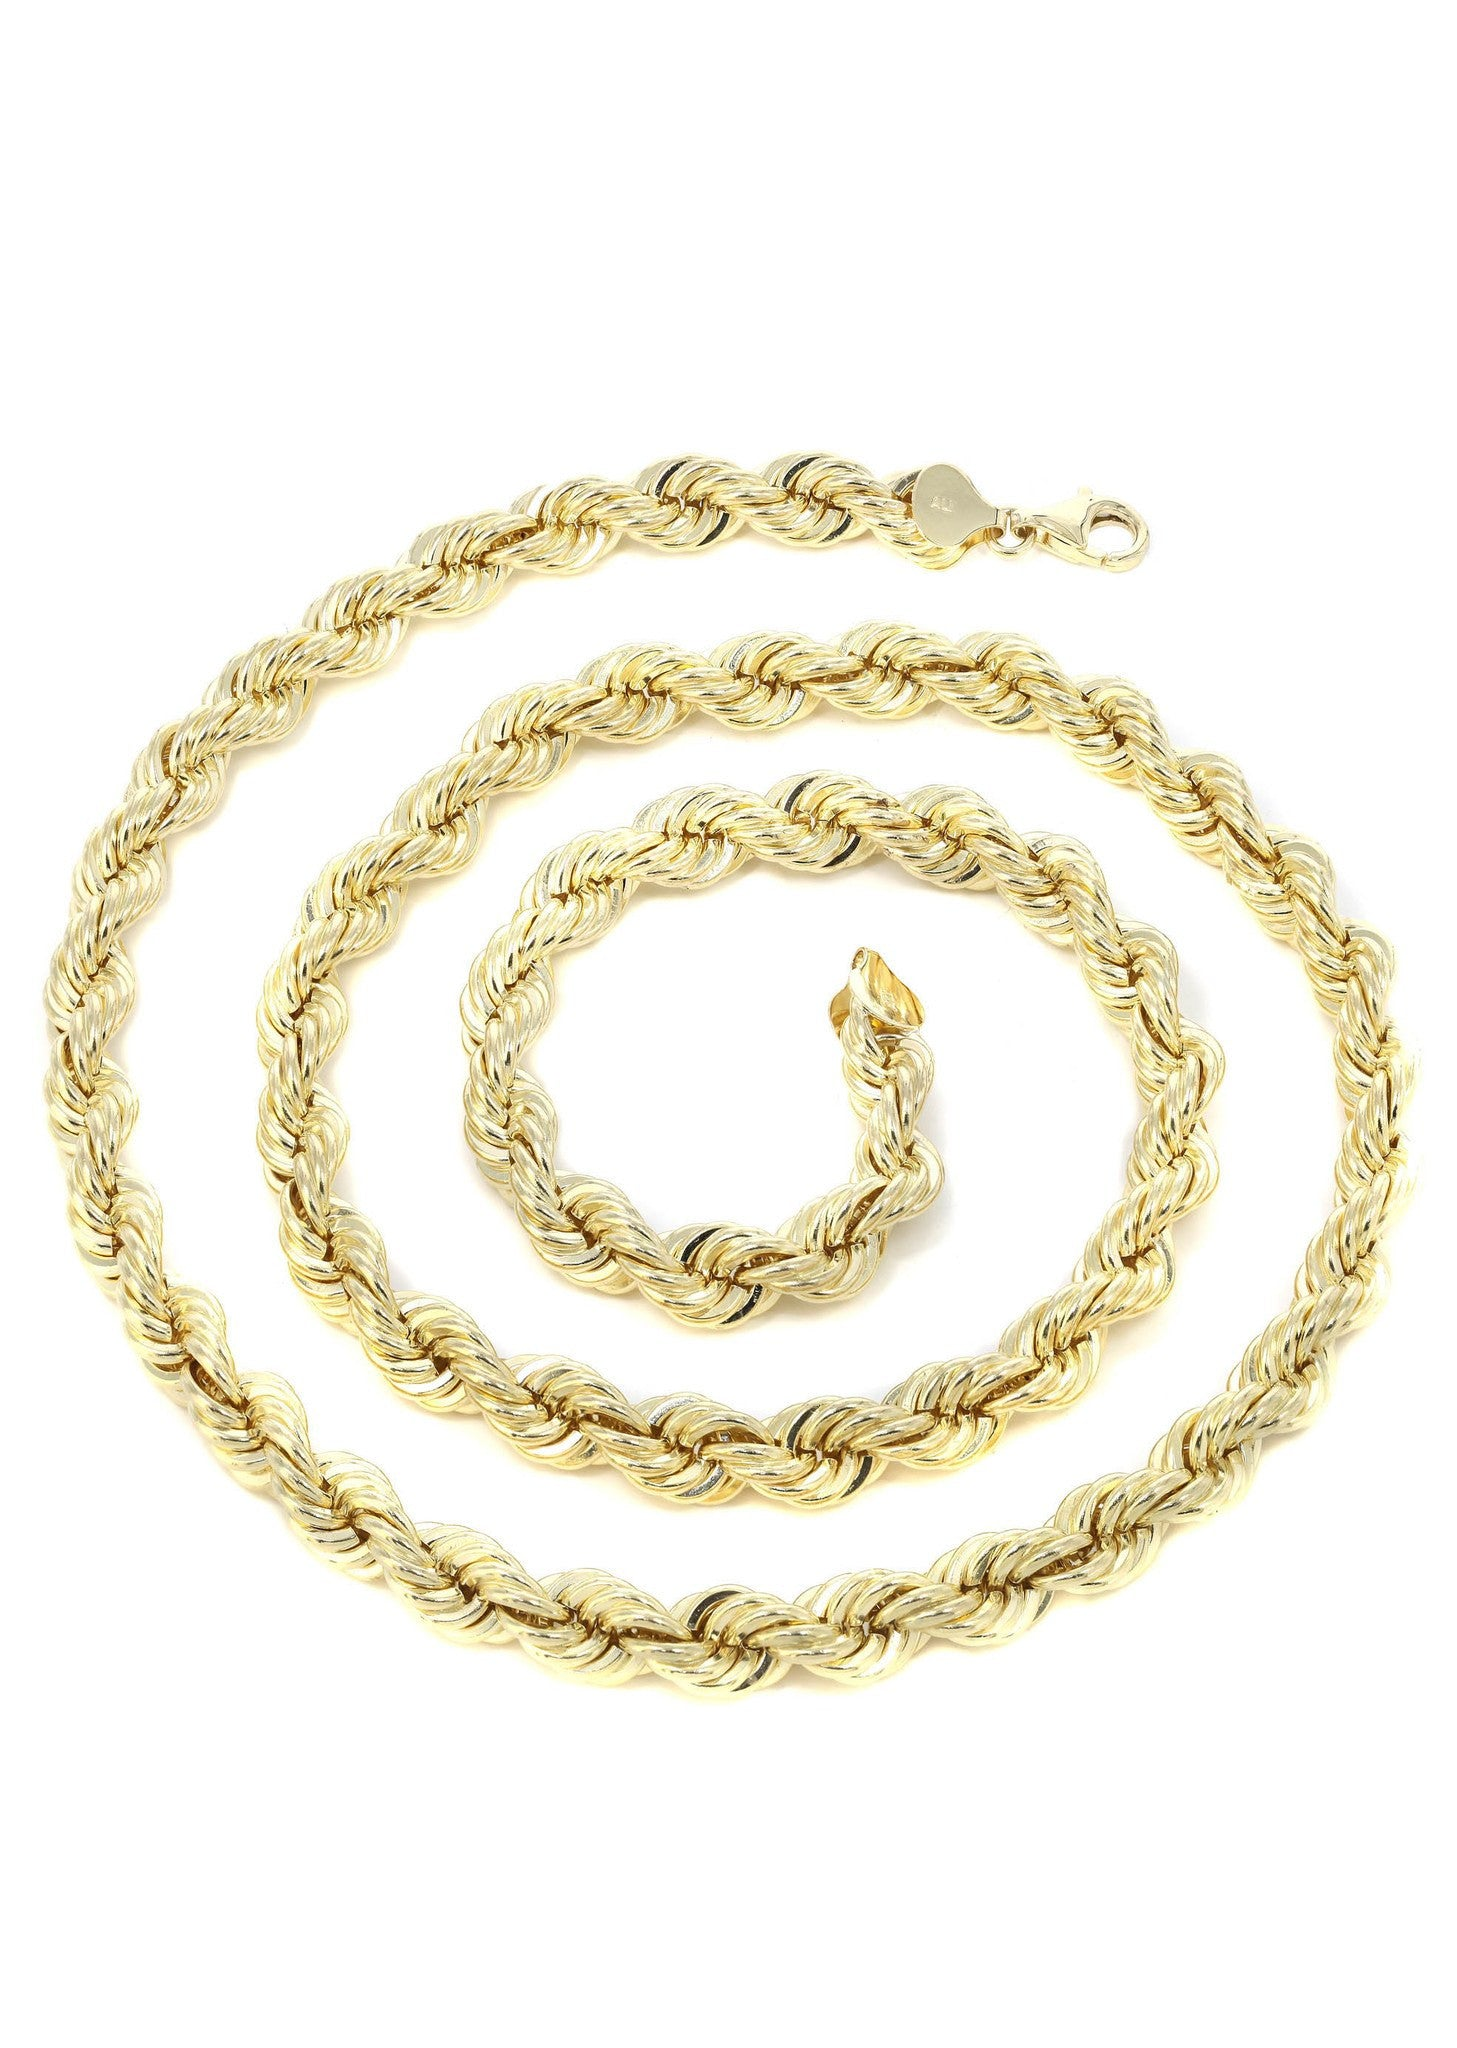 23c735d0dcf85 Gold Chain - Mens Solid Rope Chain 10K Gold – FrostNYC